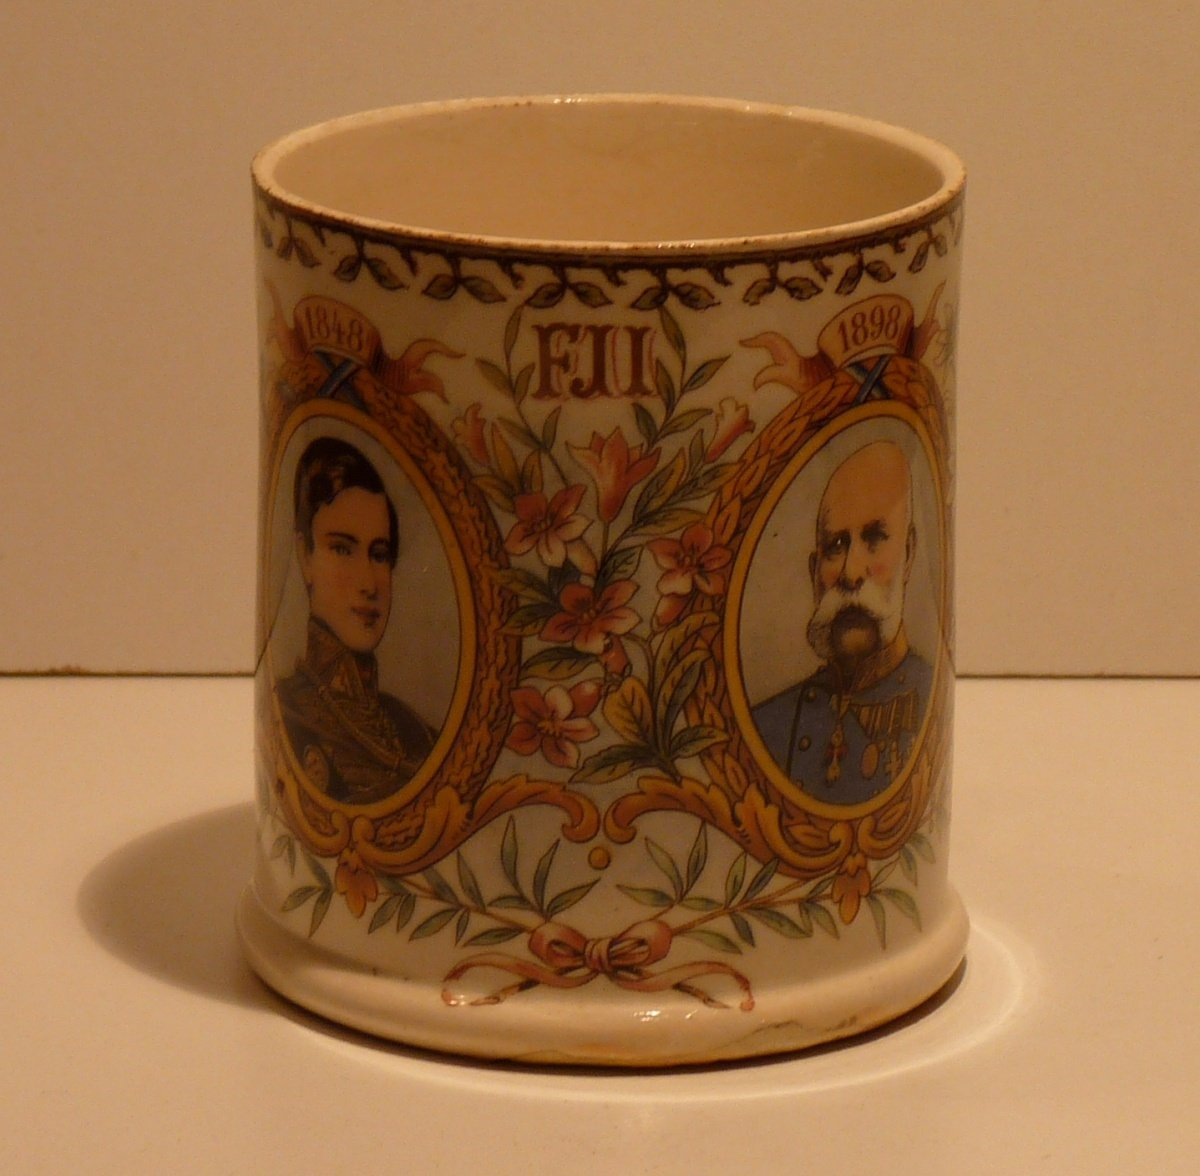 Cup with Franz Joseph